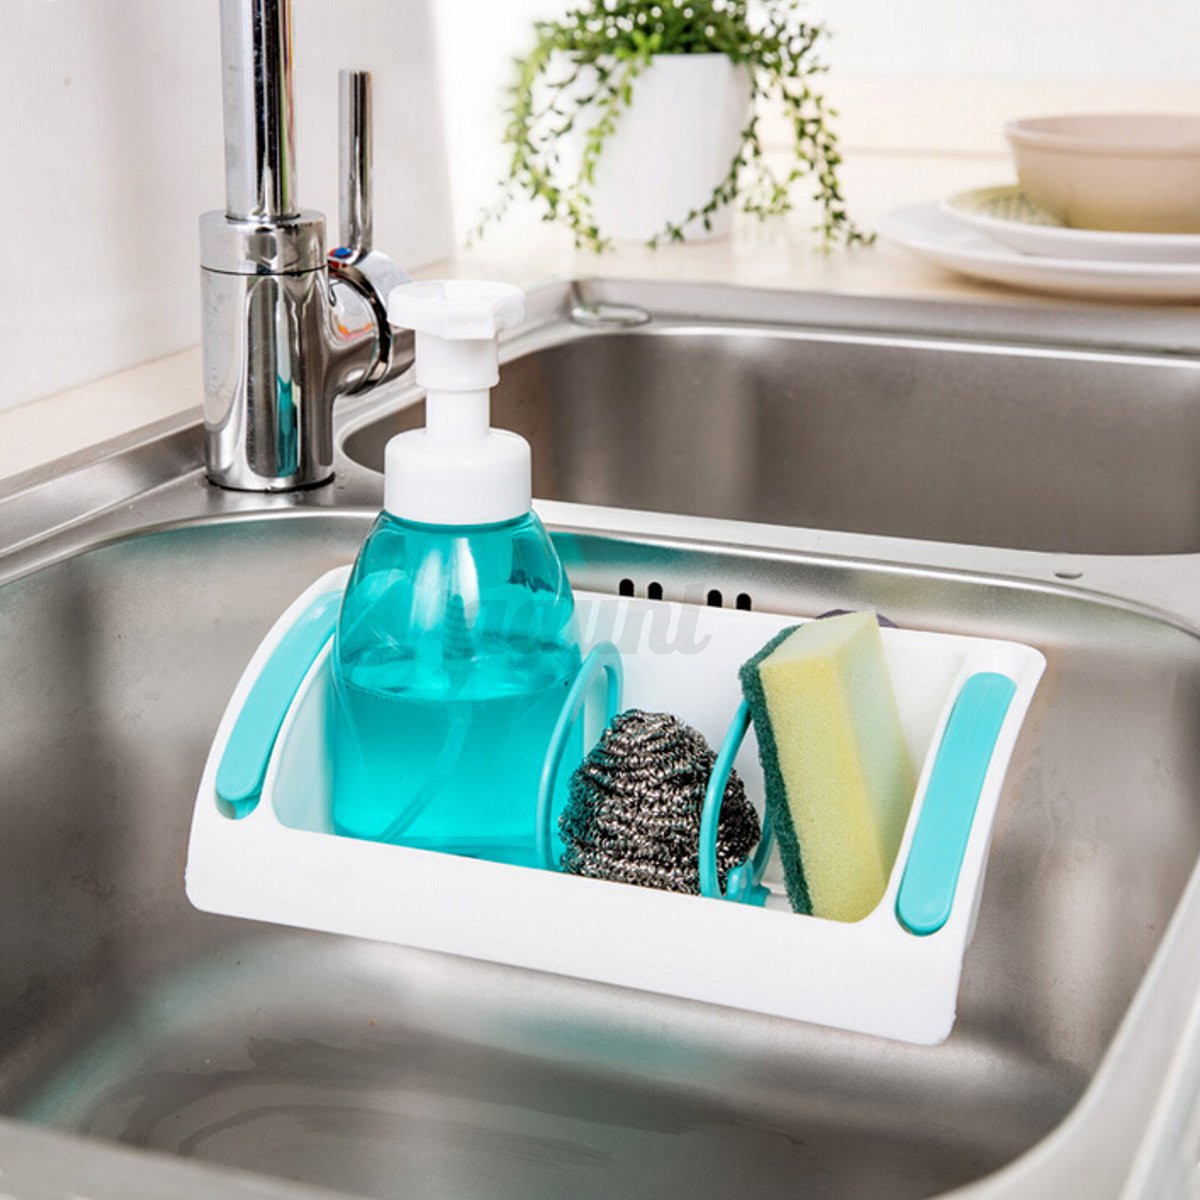 kitchen soap rack - 28 images - kitchen sink rack holder drainer ...